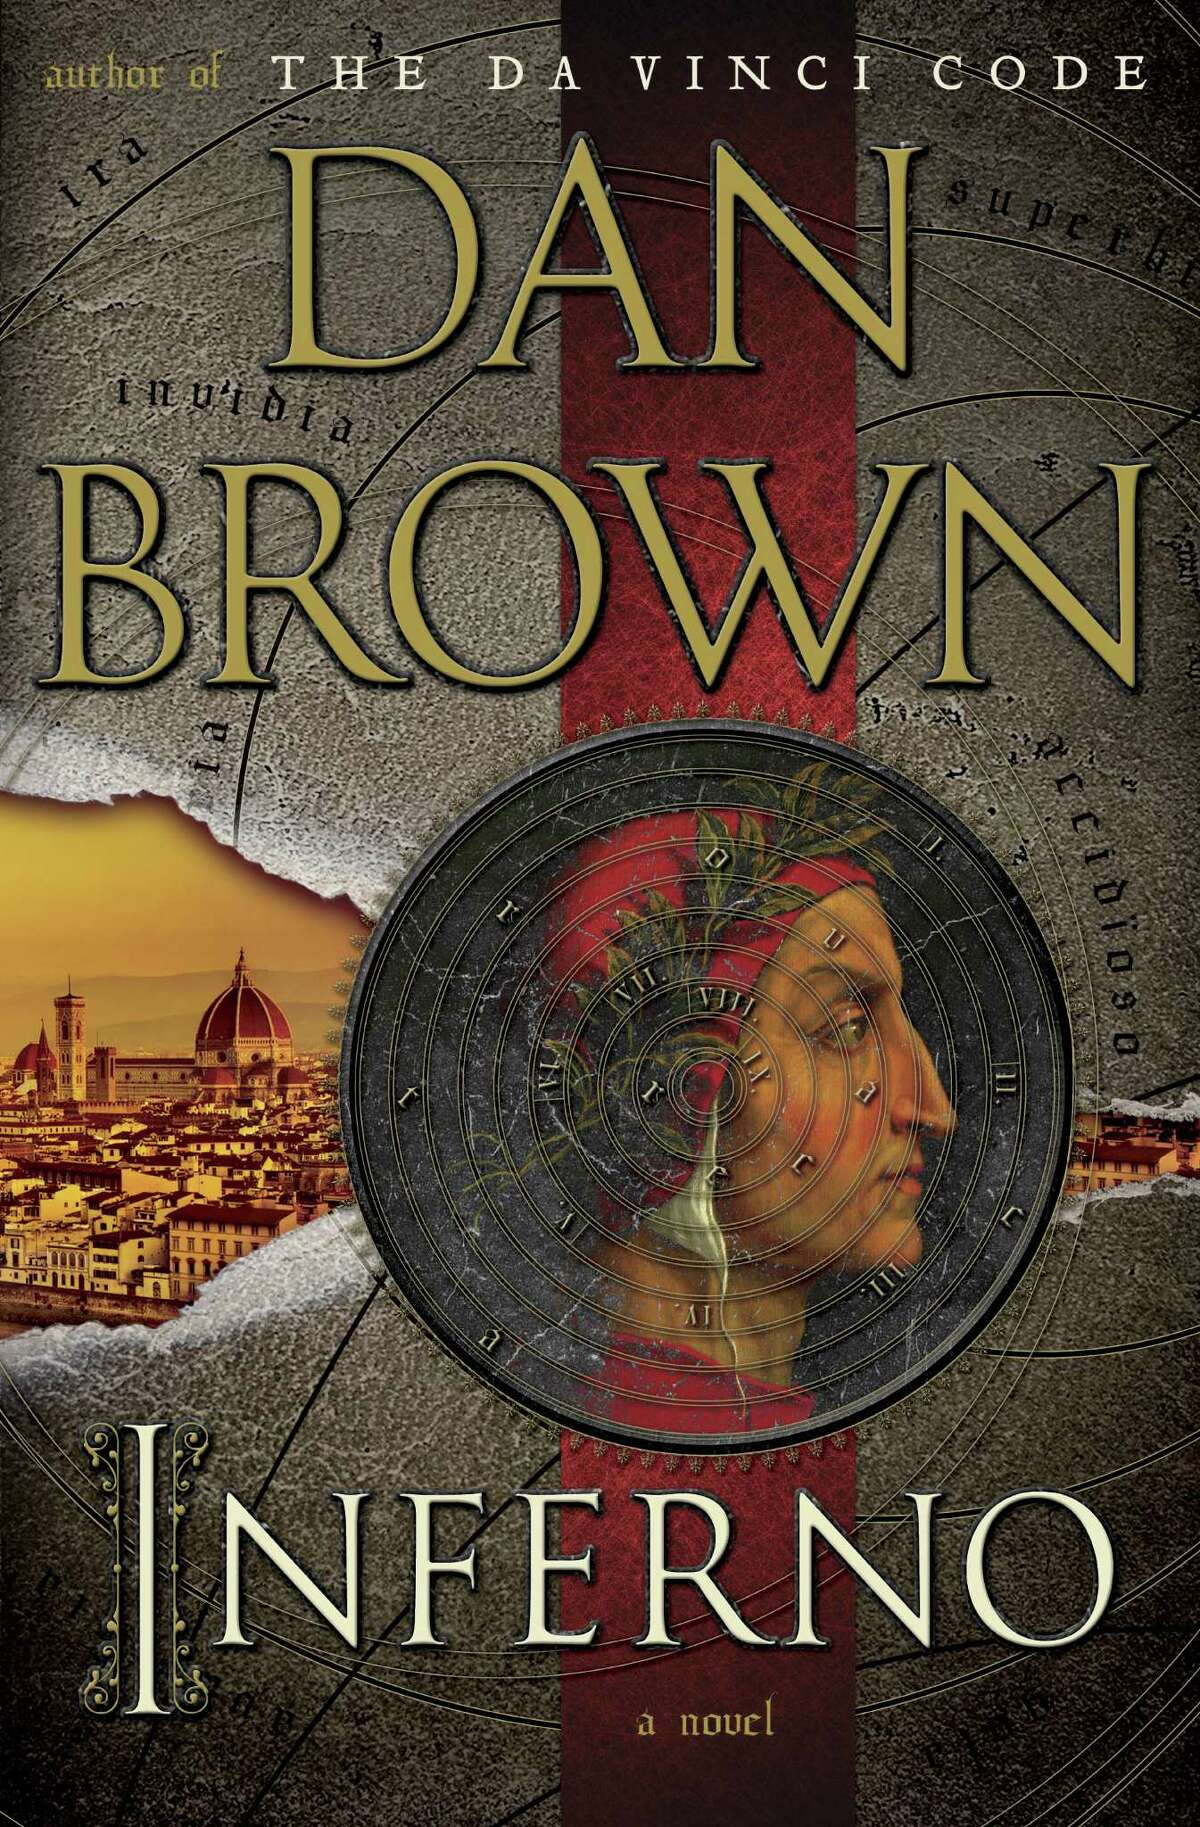 """This book cover image released by Doubleday shows """"Inferno,"""" by Dan Brown. No mega-sellers came out in 2013, nothing that compared with E L James' """"Fifty Shades of Gray"""" or Stieg Larsson's crime novels. Adult readers turned to dependable favorites such as Dan Brown and Khaled Hosseini, while teens and grade-schoolers stuck with Rick Riordan, Jeff Kinney and Veronica Roth, whose """"Divergent"""" series is set to debut on the big screen in 2014. (AP Photo/Doubleday) ORG XMIT: NYET342"""